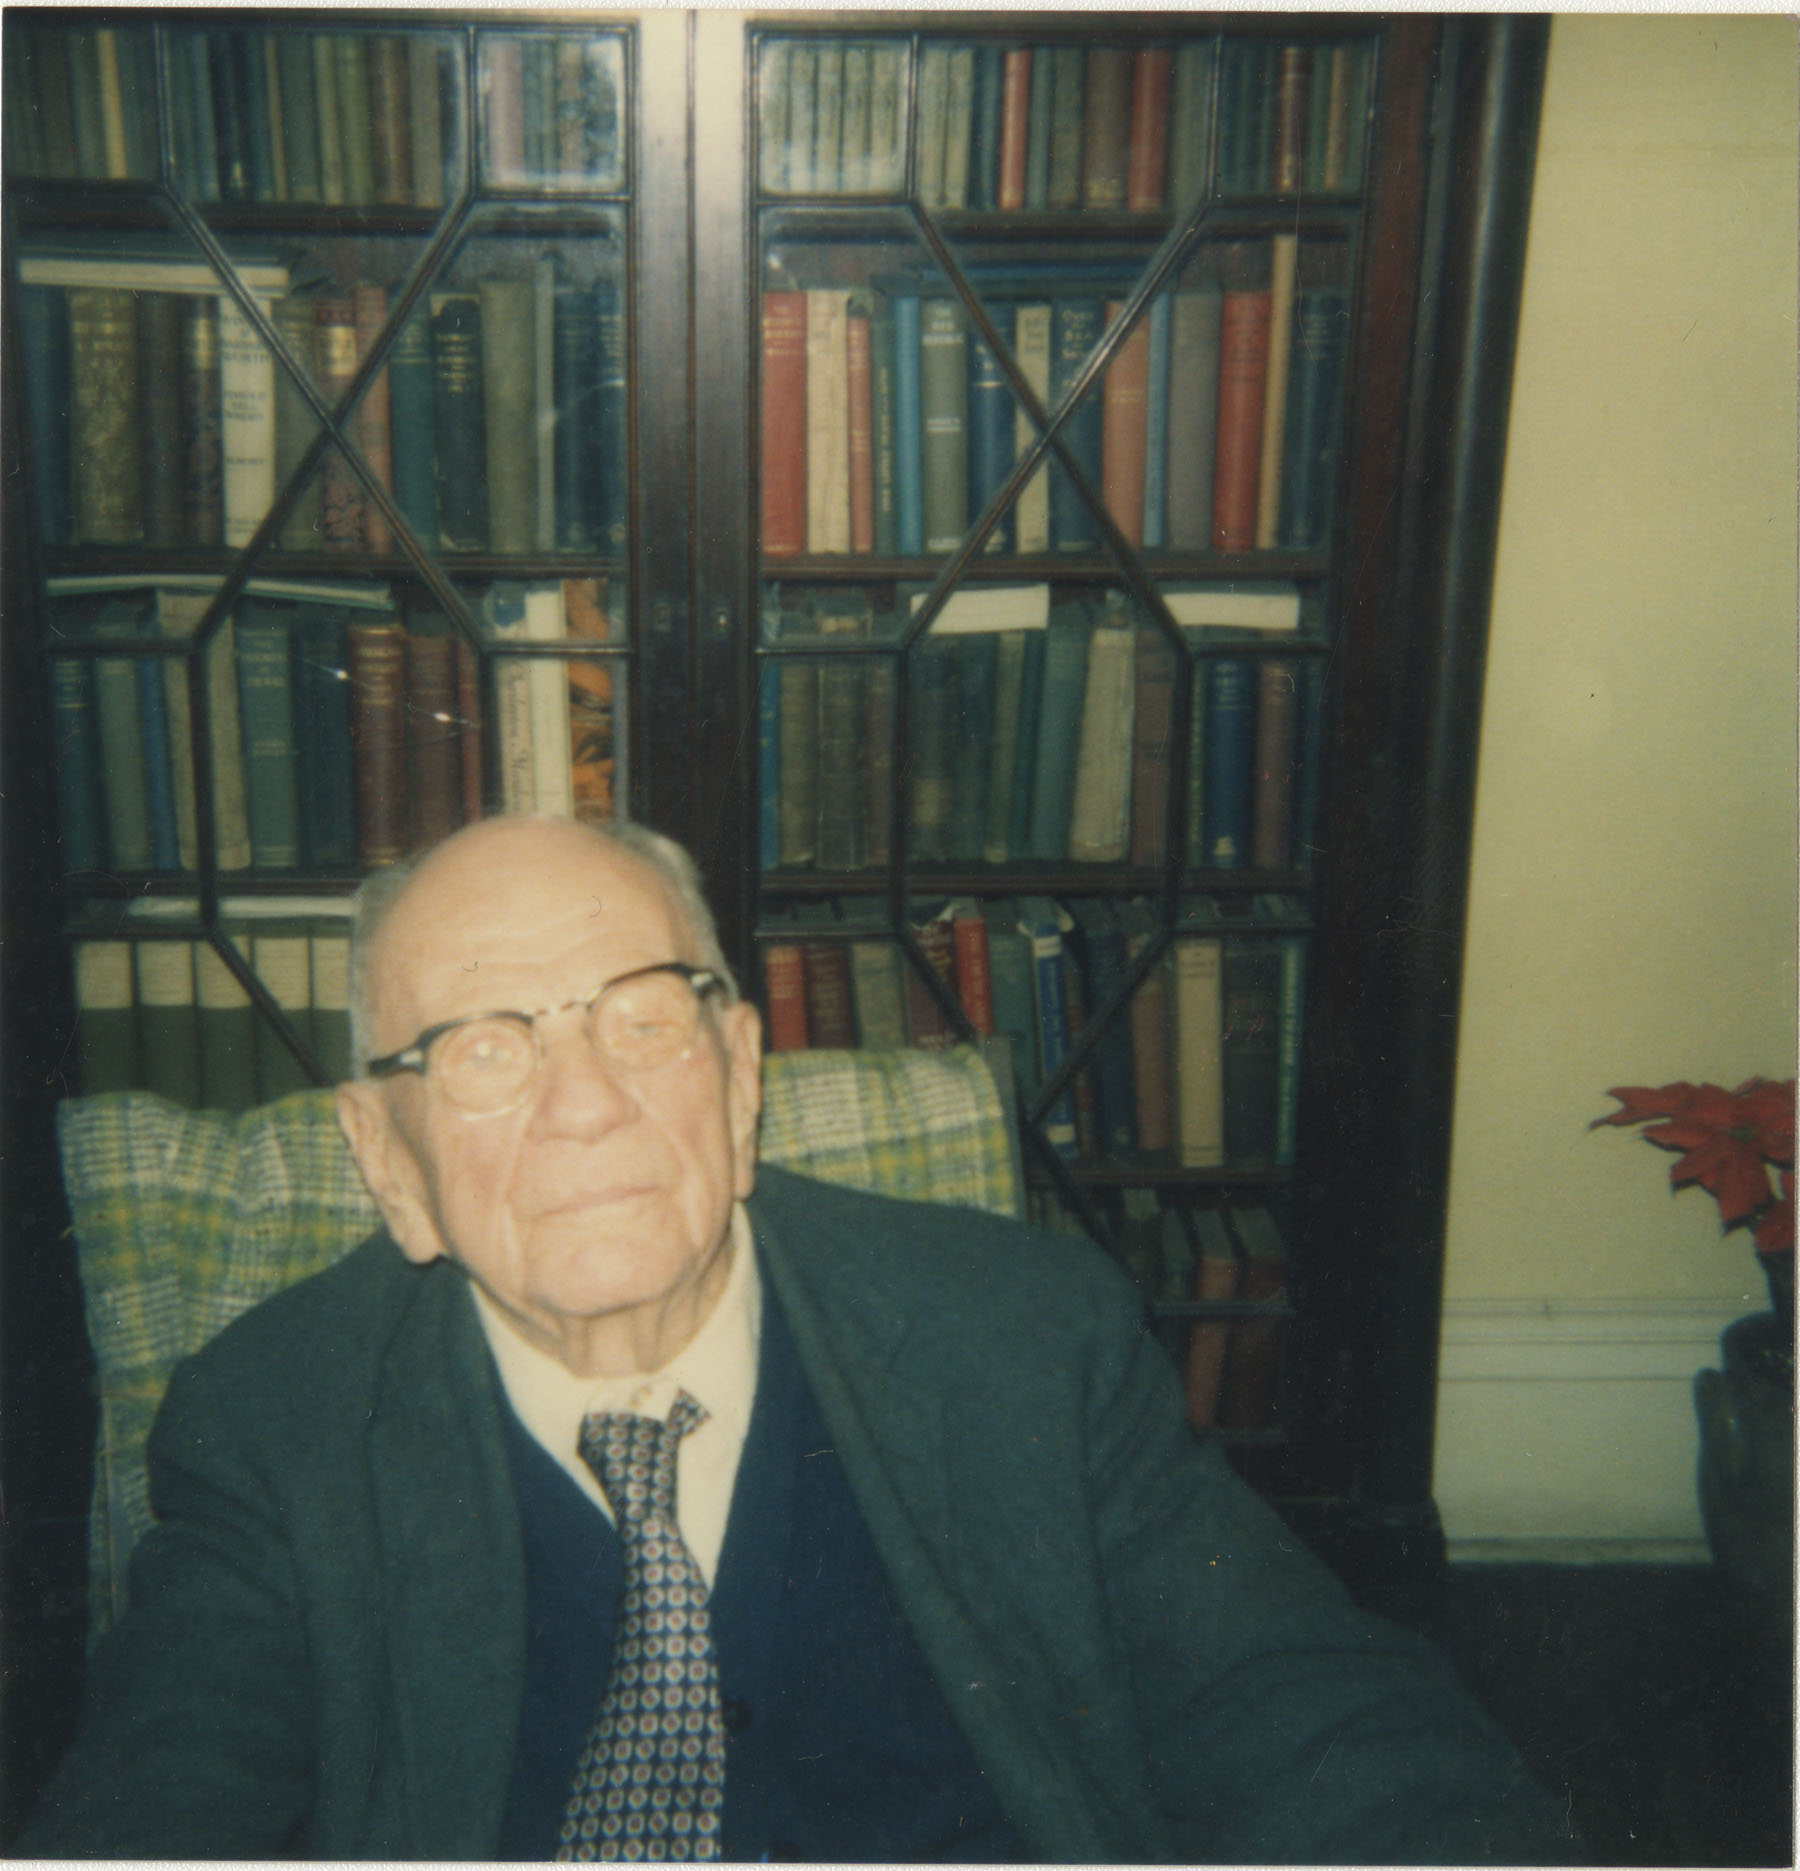 Willie McLeod in Front of Bookcases